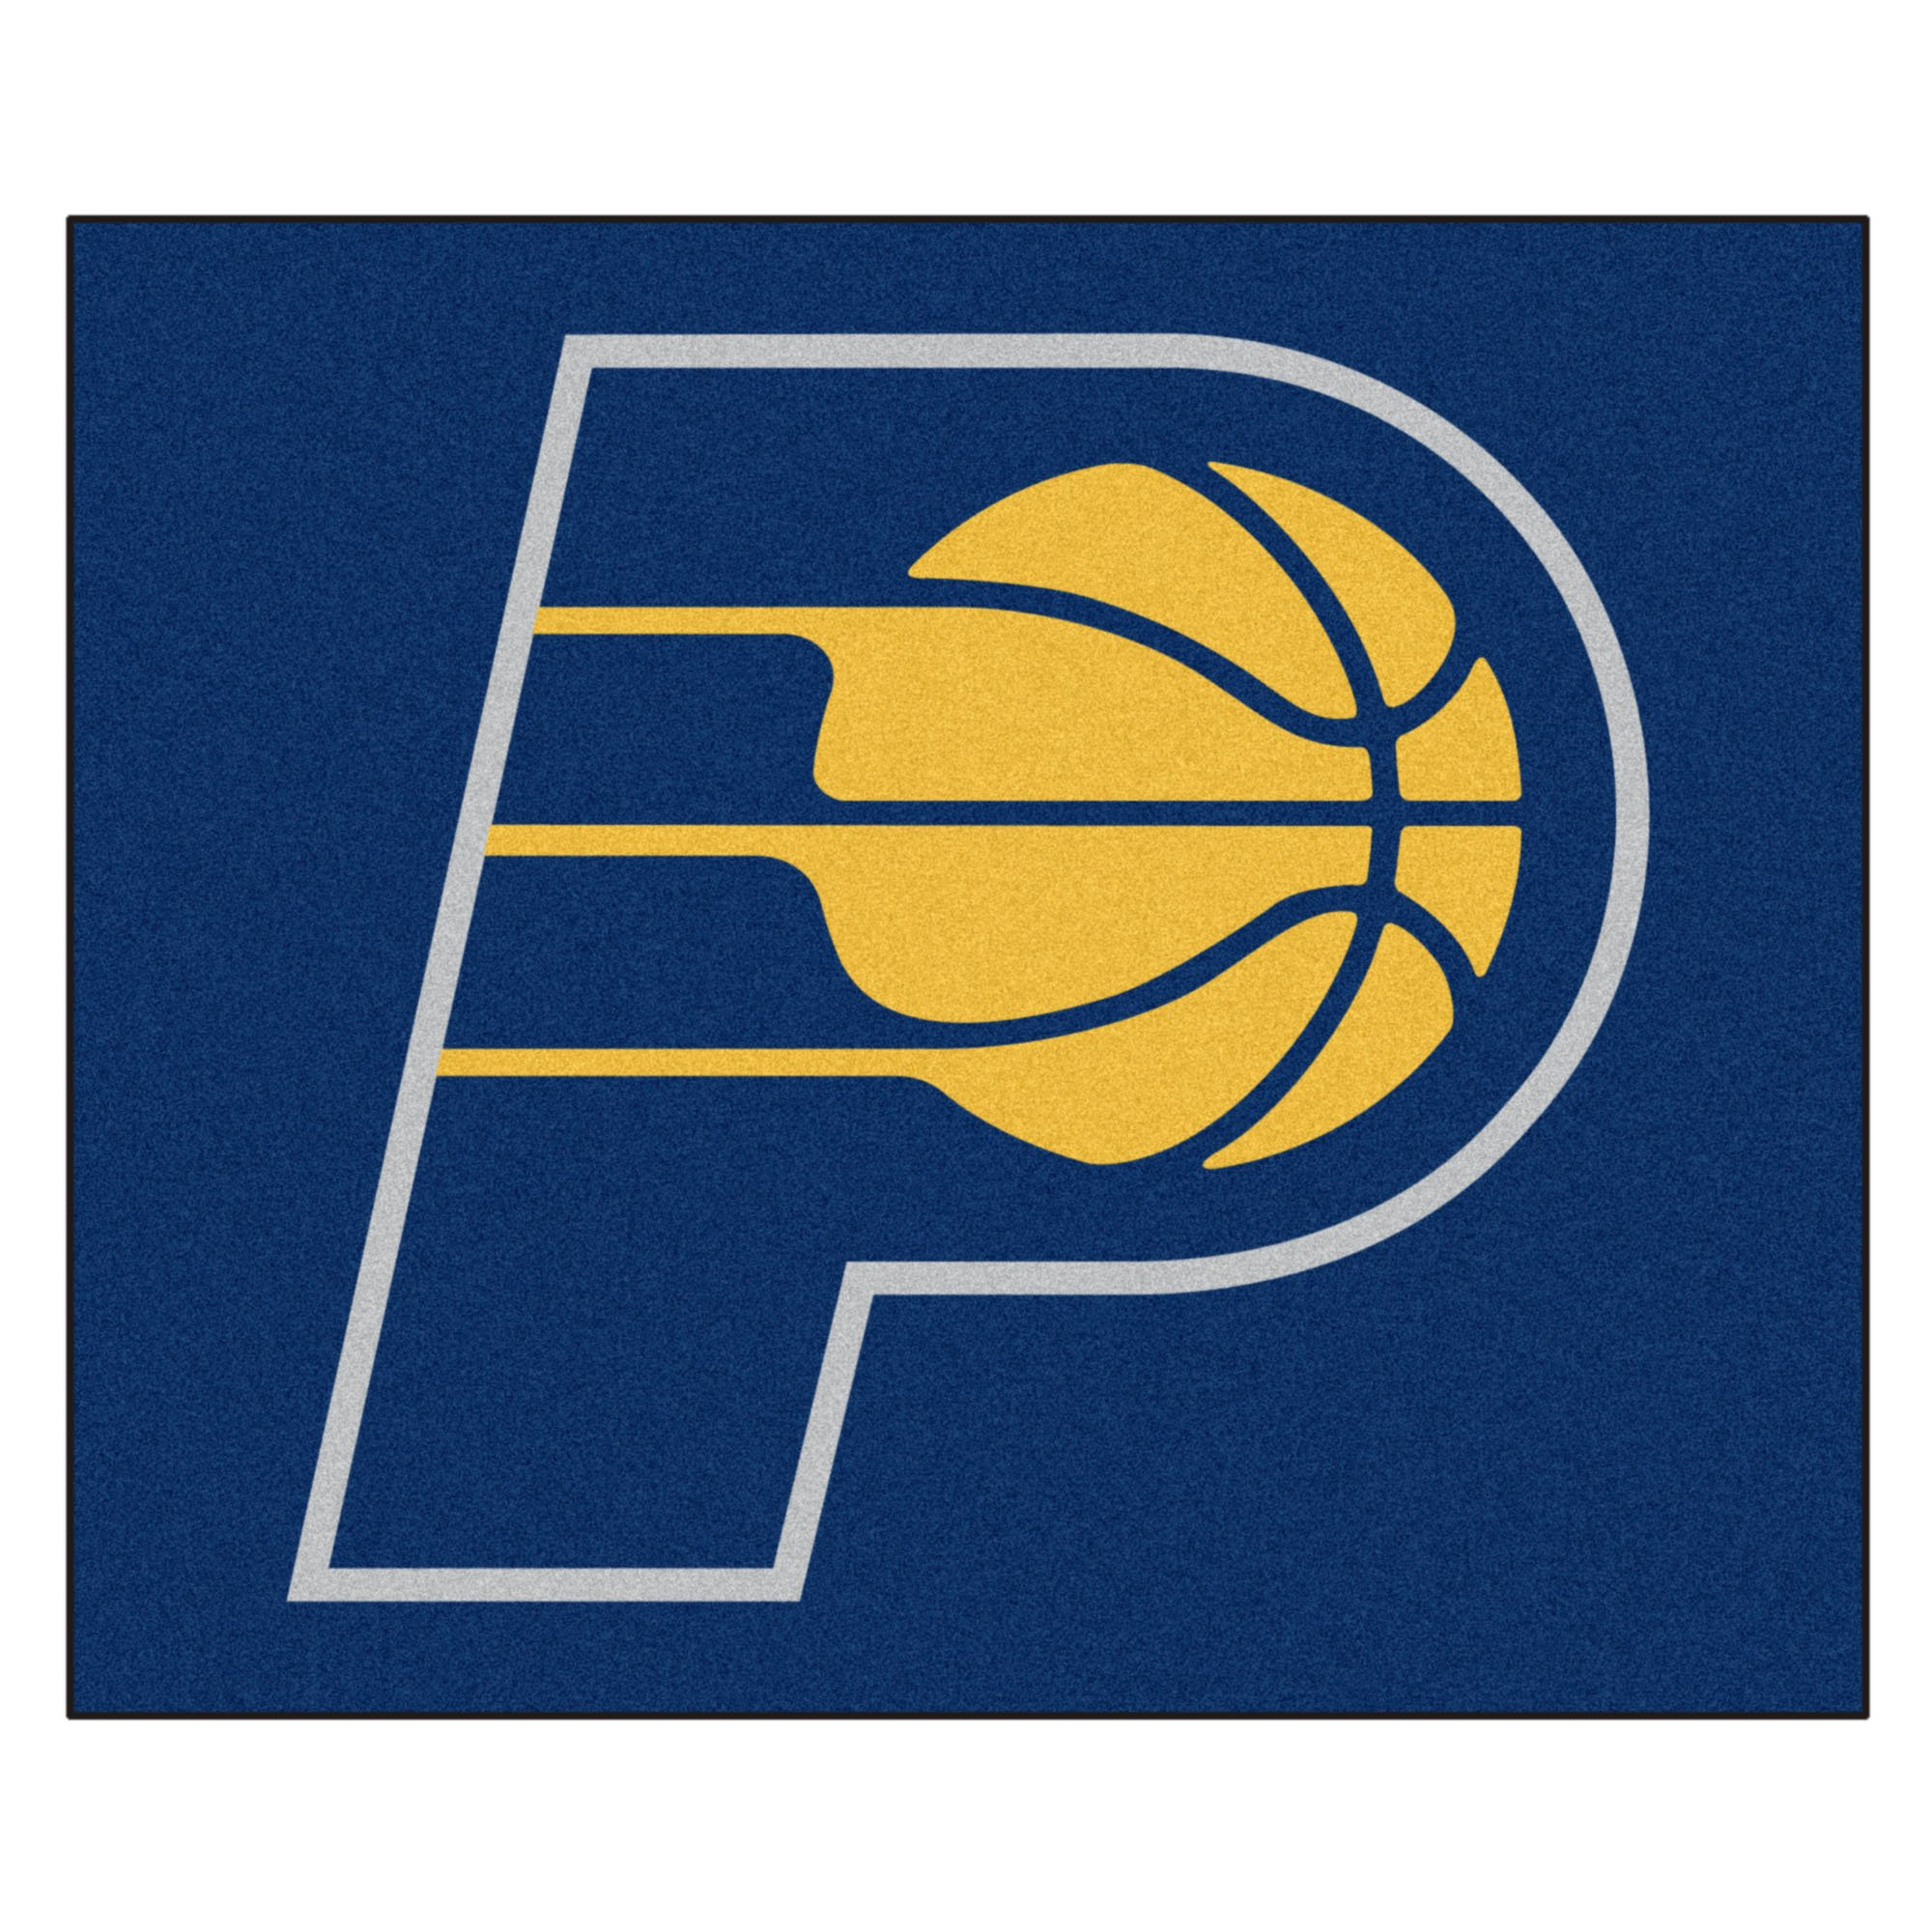 FANMATS 19445 NBA - Indiana Pacers Tailgater Rug , Team Color, 59.5''x71''